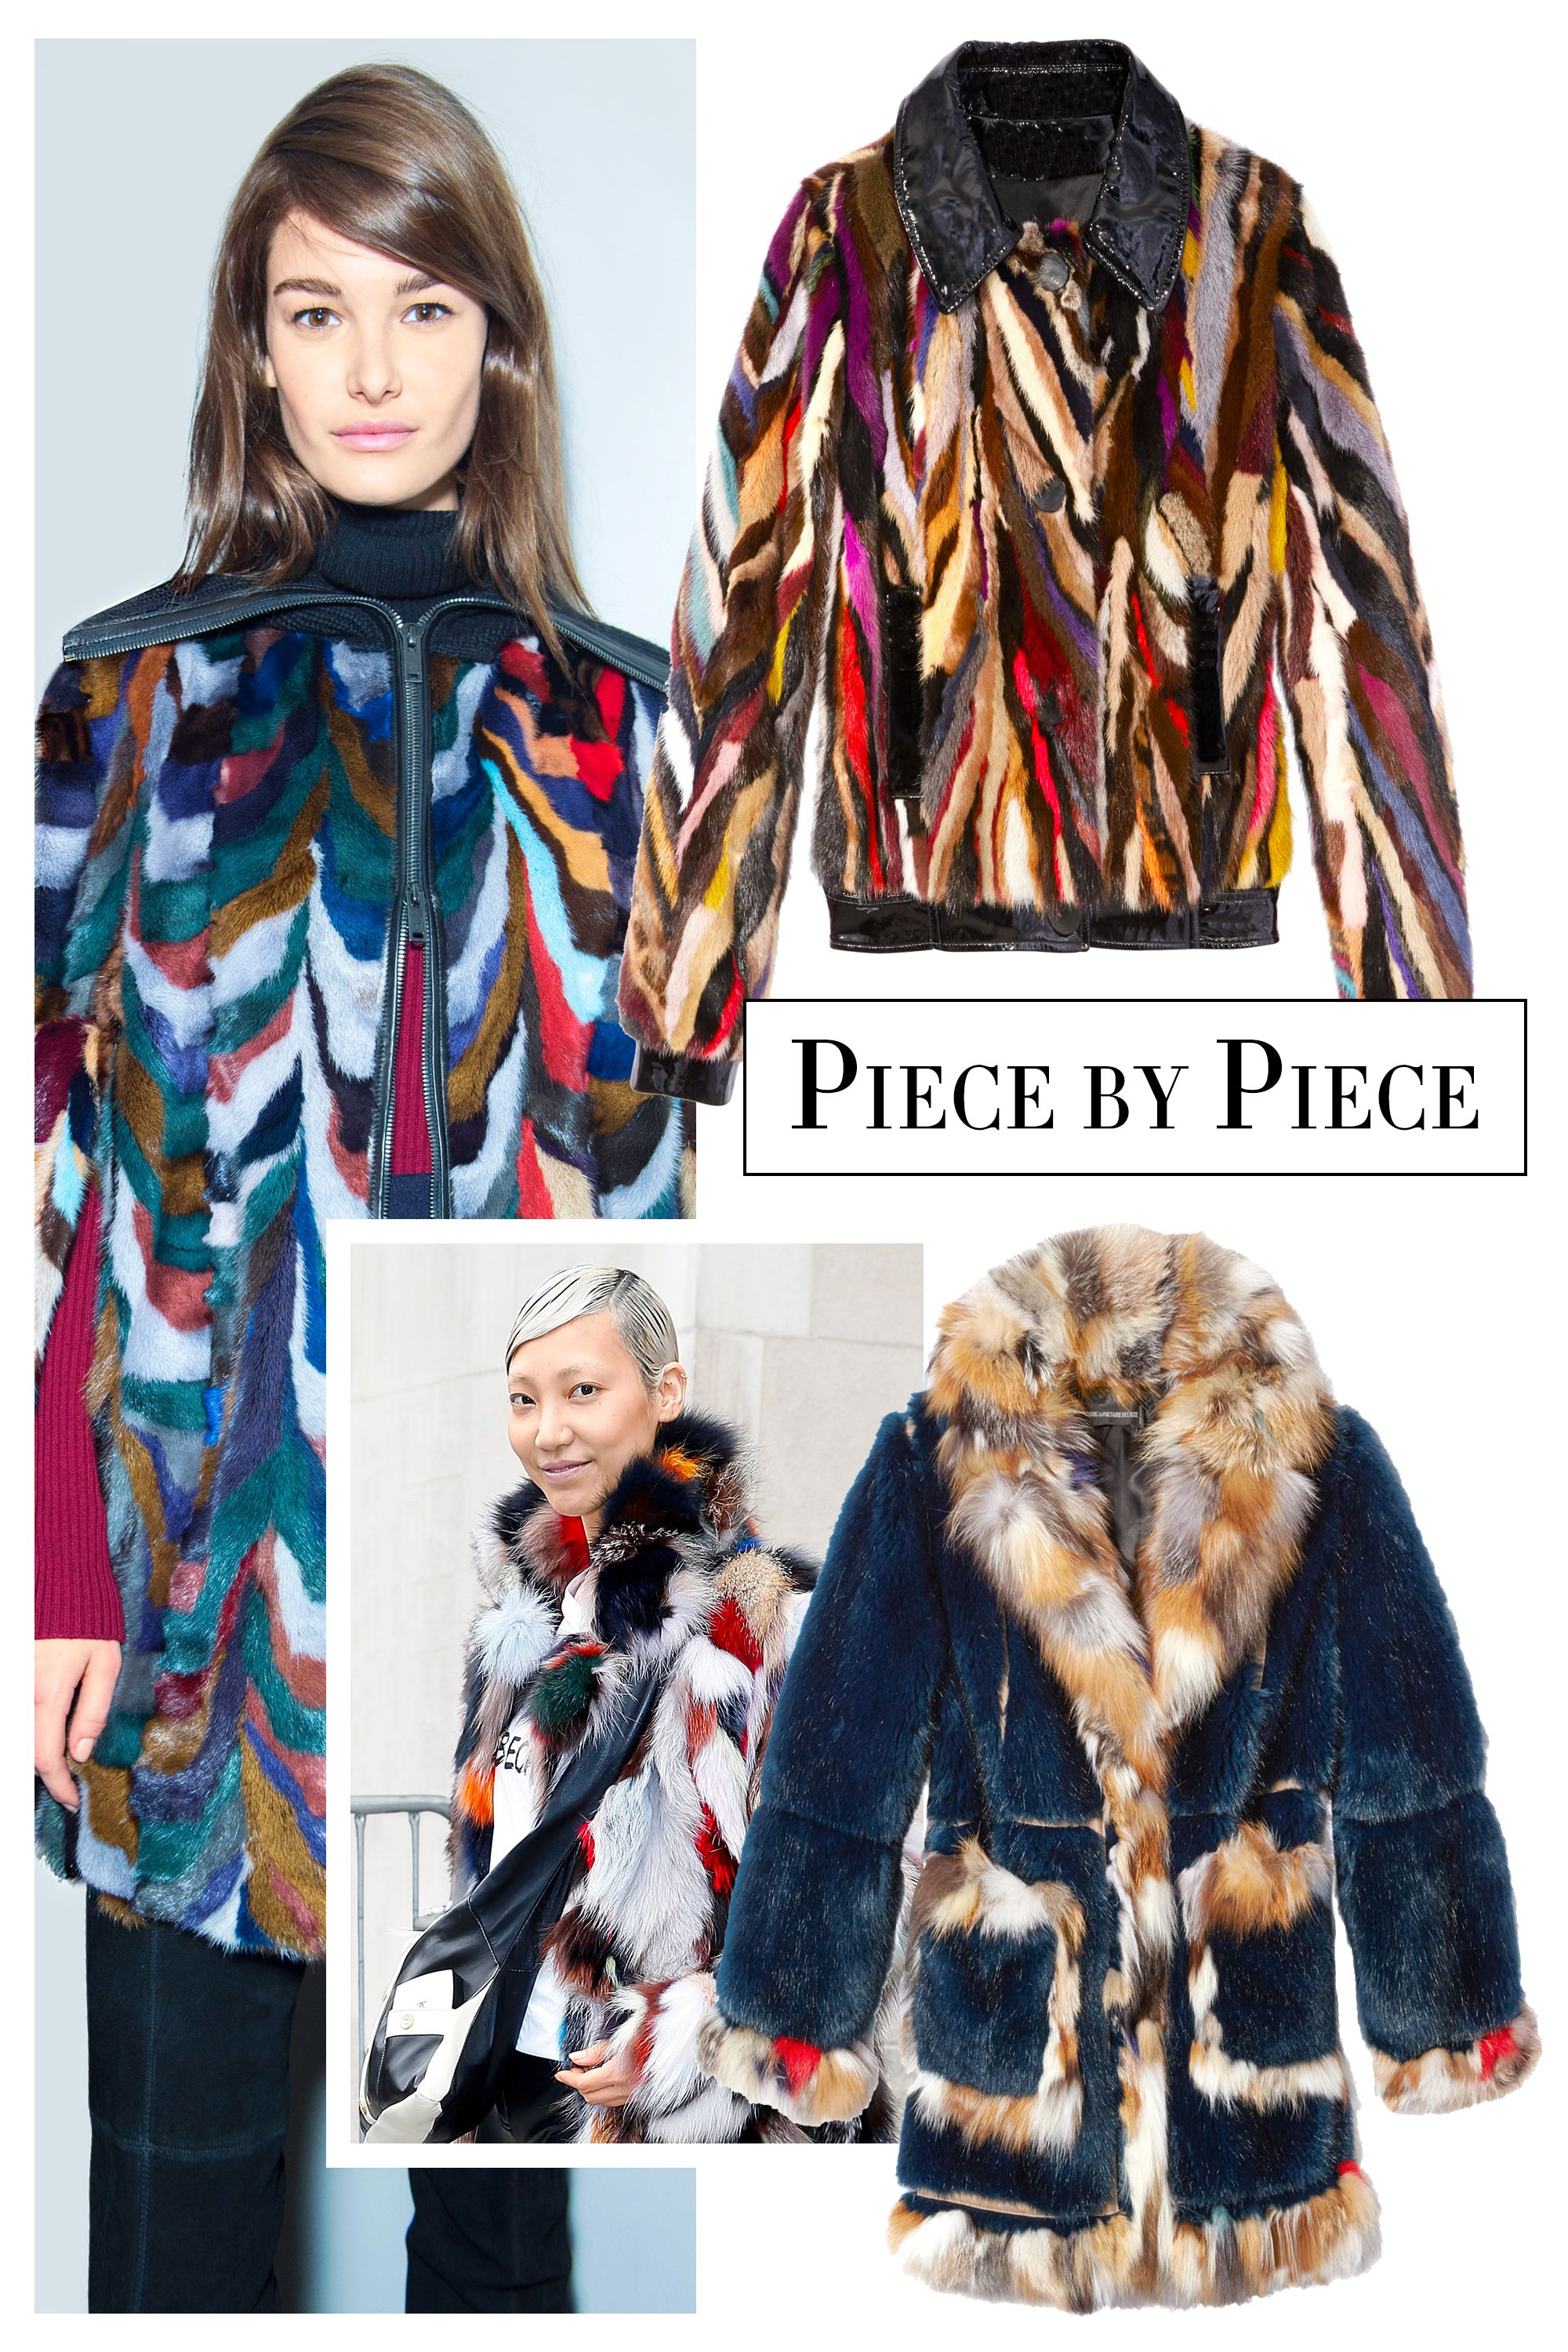 "<p>Fur coats (and jackets) bring a flash of fun fit to brighten any wardobe with their multicolored patchwork and shaggy finishes. Wear them with leather leggings and chunky-heeled boots. </p><p><strong>Yves Salomon</strong> jacket, $2,633, 970-544-3564; <strong>Zadig & Voltaire</strong> coat, Similar styles available at <a href=""http://www.shopbazaar.com/"" target=""_blank"">shopBAZAAR.com</a><img src=""http://assets.hdmtools.com/images/HBZ/Shop.svg"" class=""icon shop"">.<span class=""redactor-invisible-space""></span><br></p>"